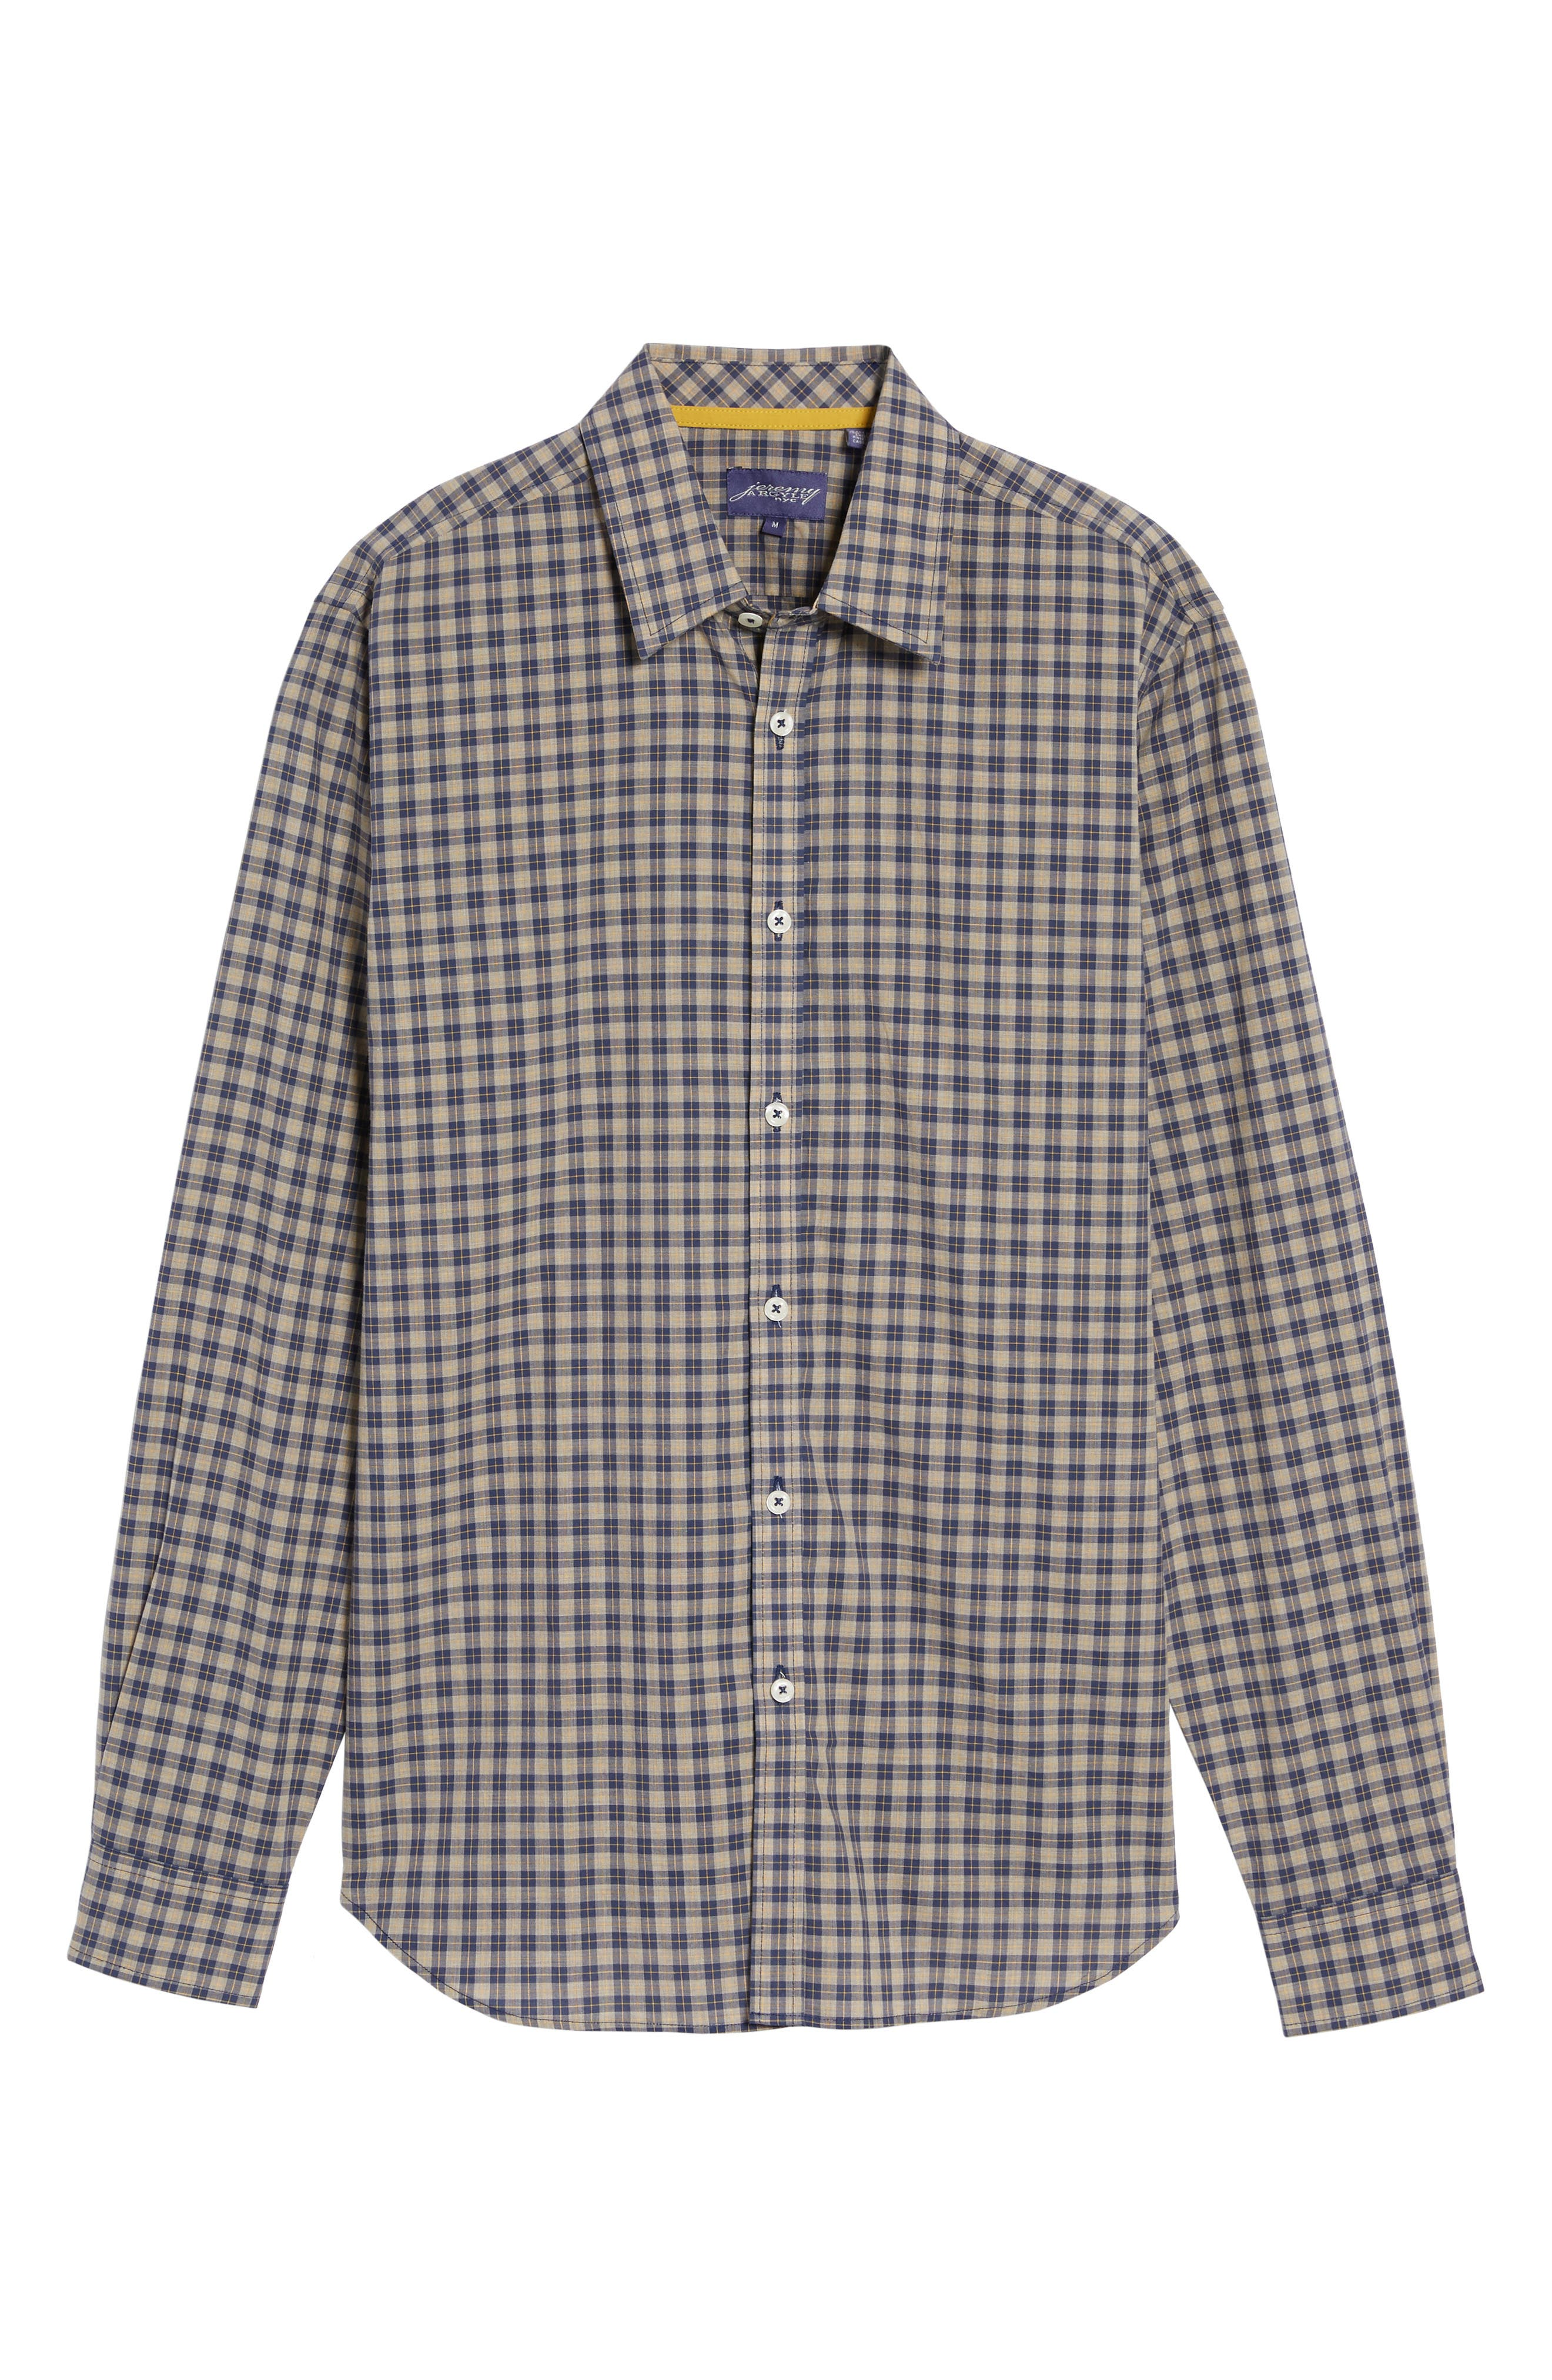 Fitted Plaid Sport Shirt,                             Alternate thumbnail 6, color,                             Open Blue